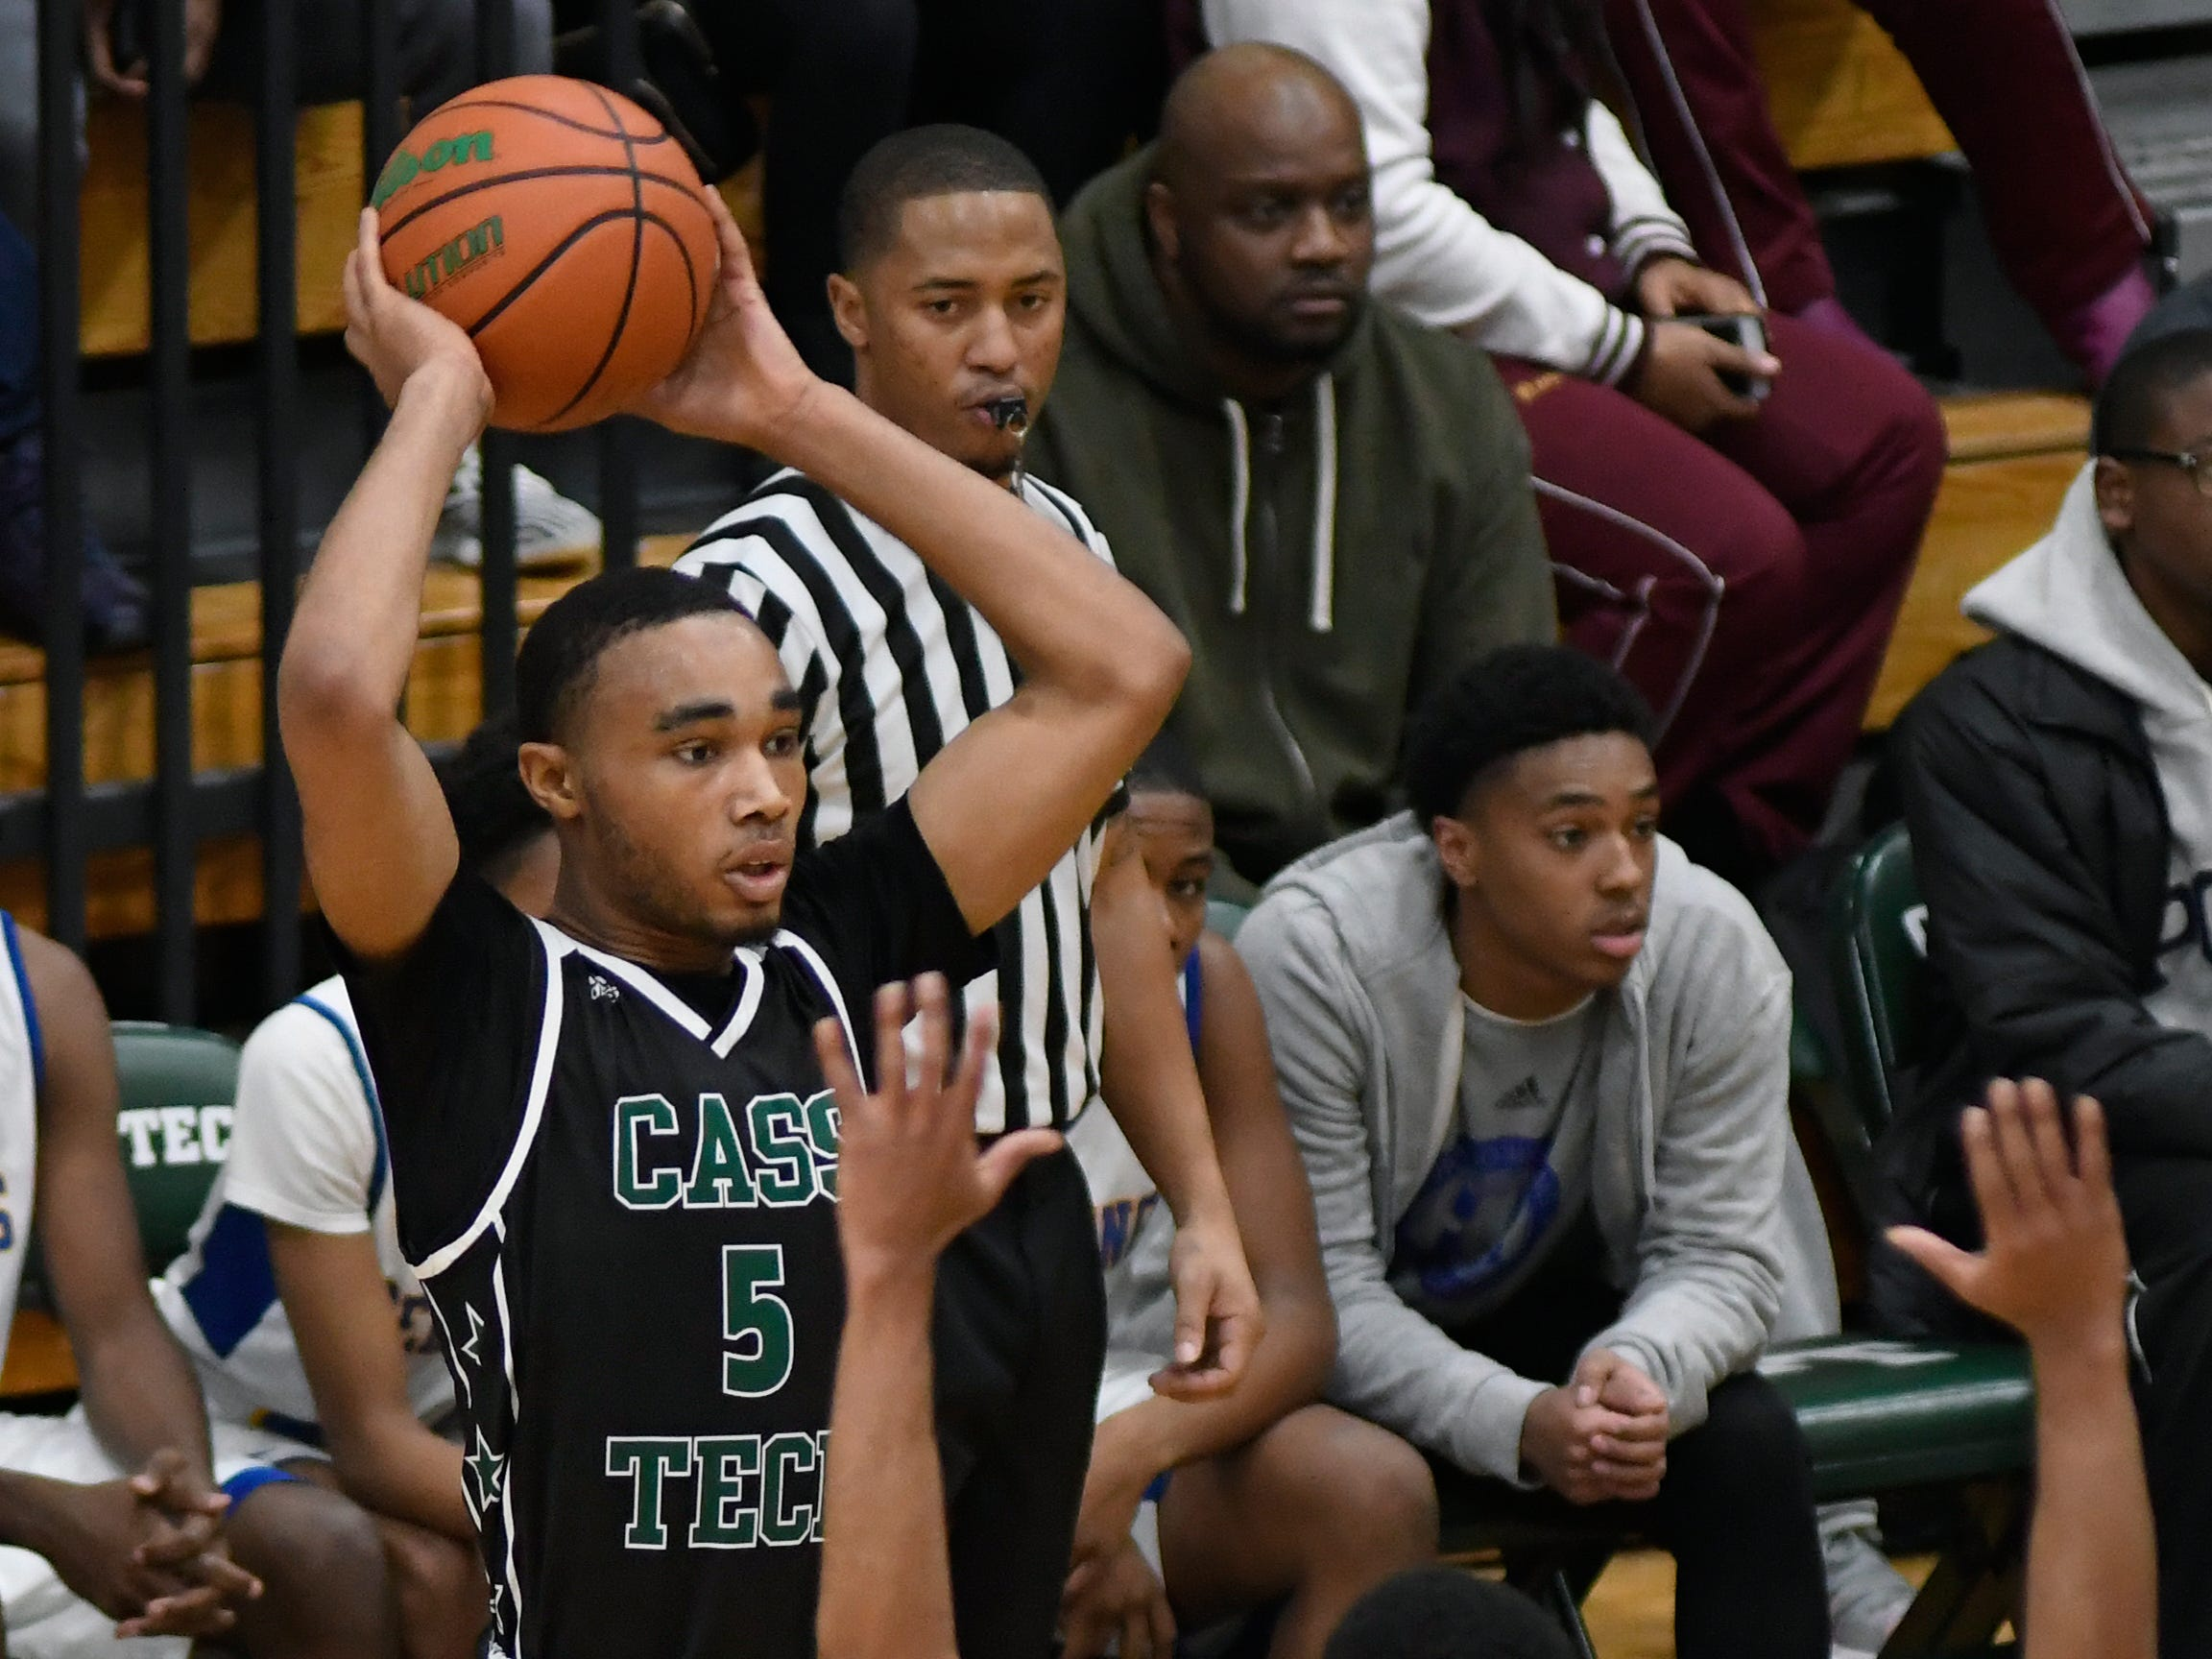 Cass Tech's Daniel Autry (5) looks to pass against Pershing during the second quarter, Tuesday, Feb. 12, 2019, in a PSL boys basketball semifinal held at Cass Tech HS in Detroit.  (Jose Juarez/Special to Detroit News)